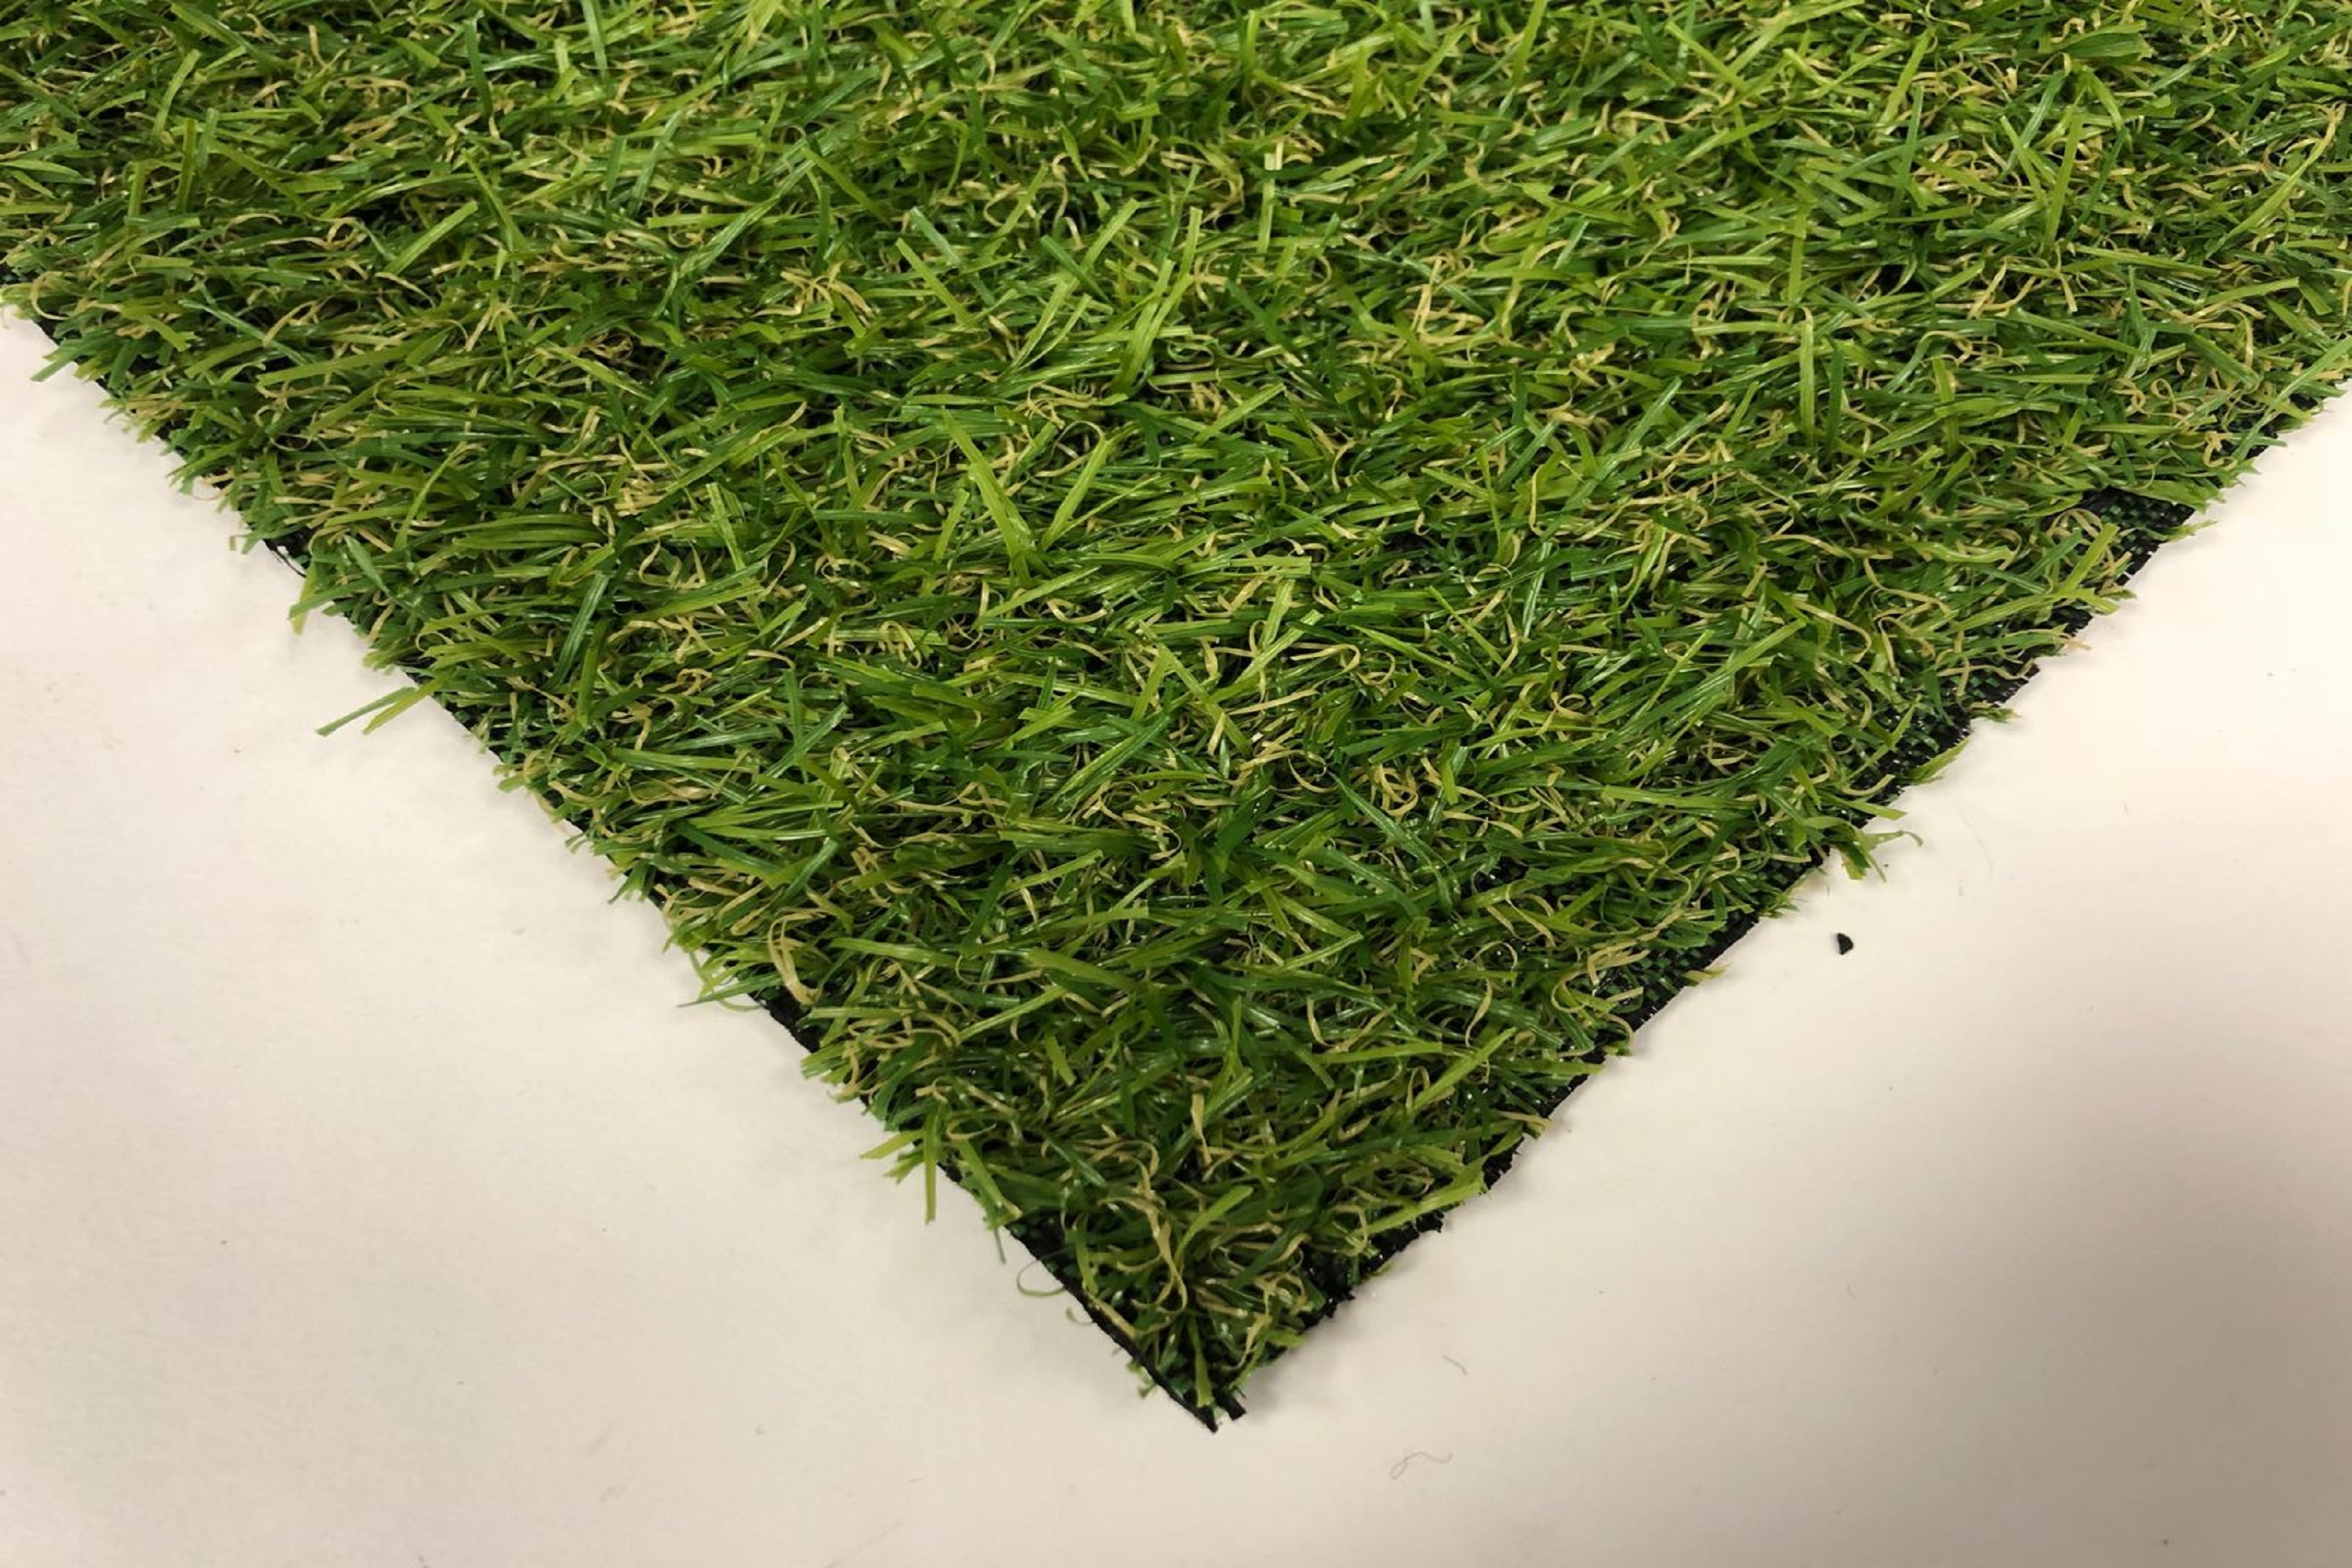 Morocco Artificial Grass